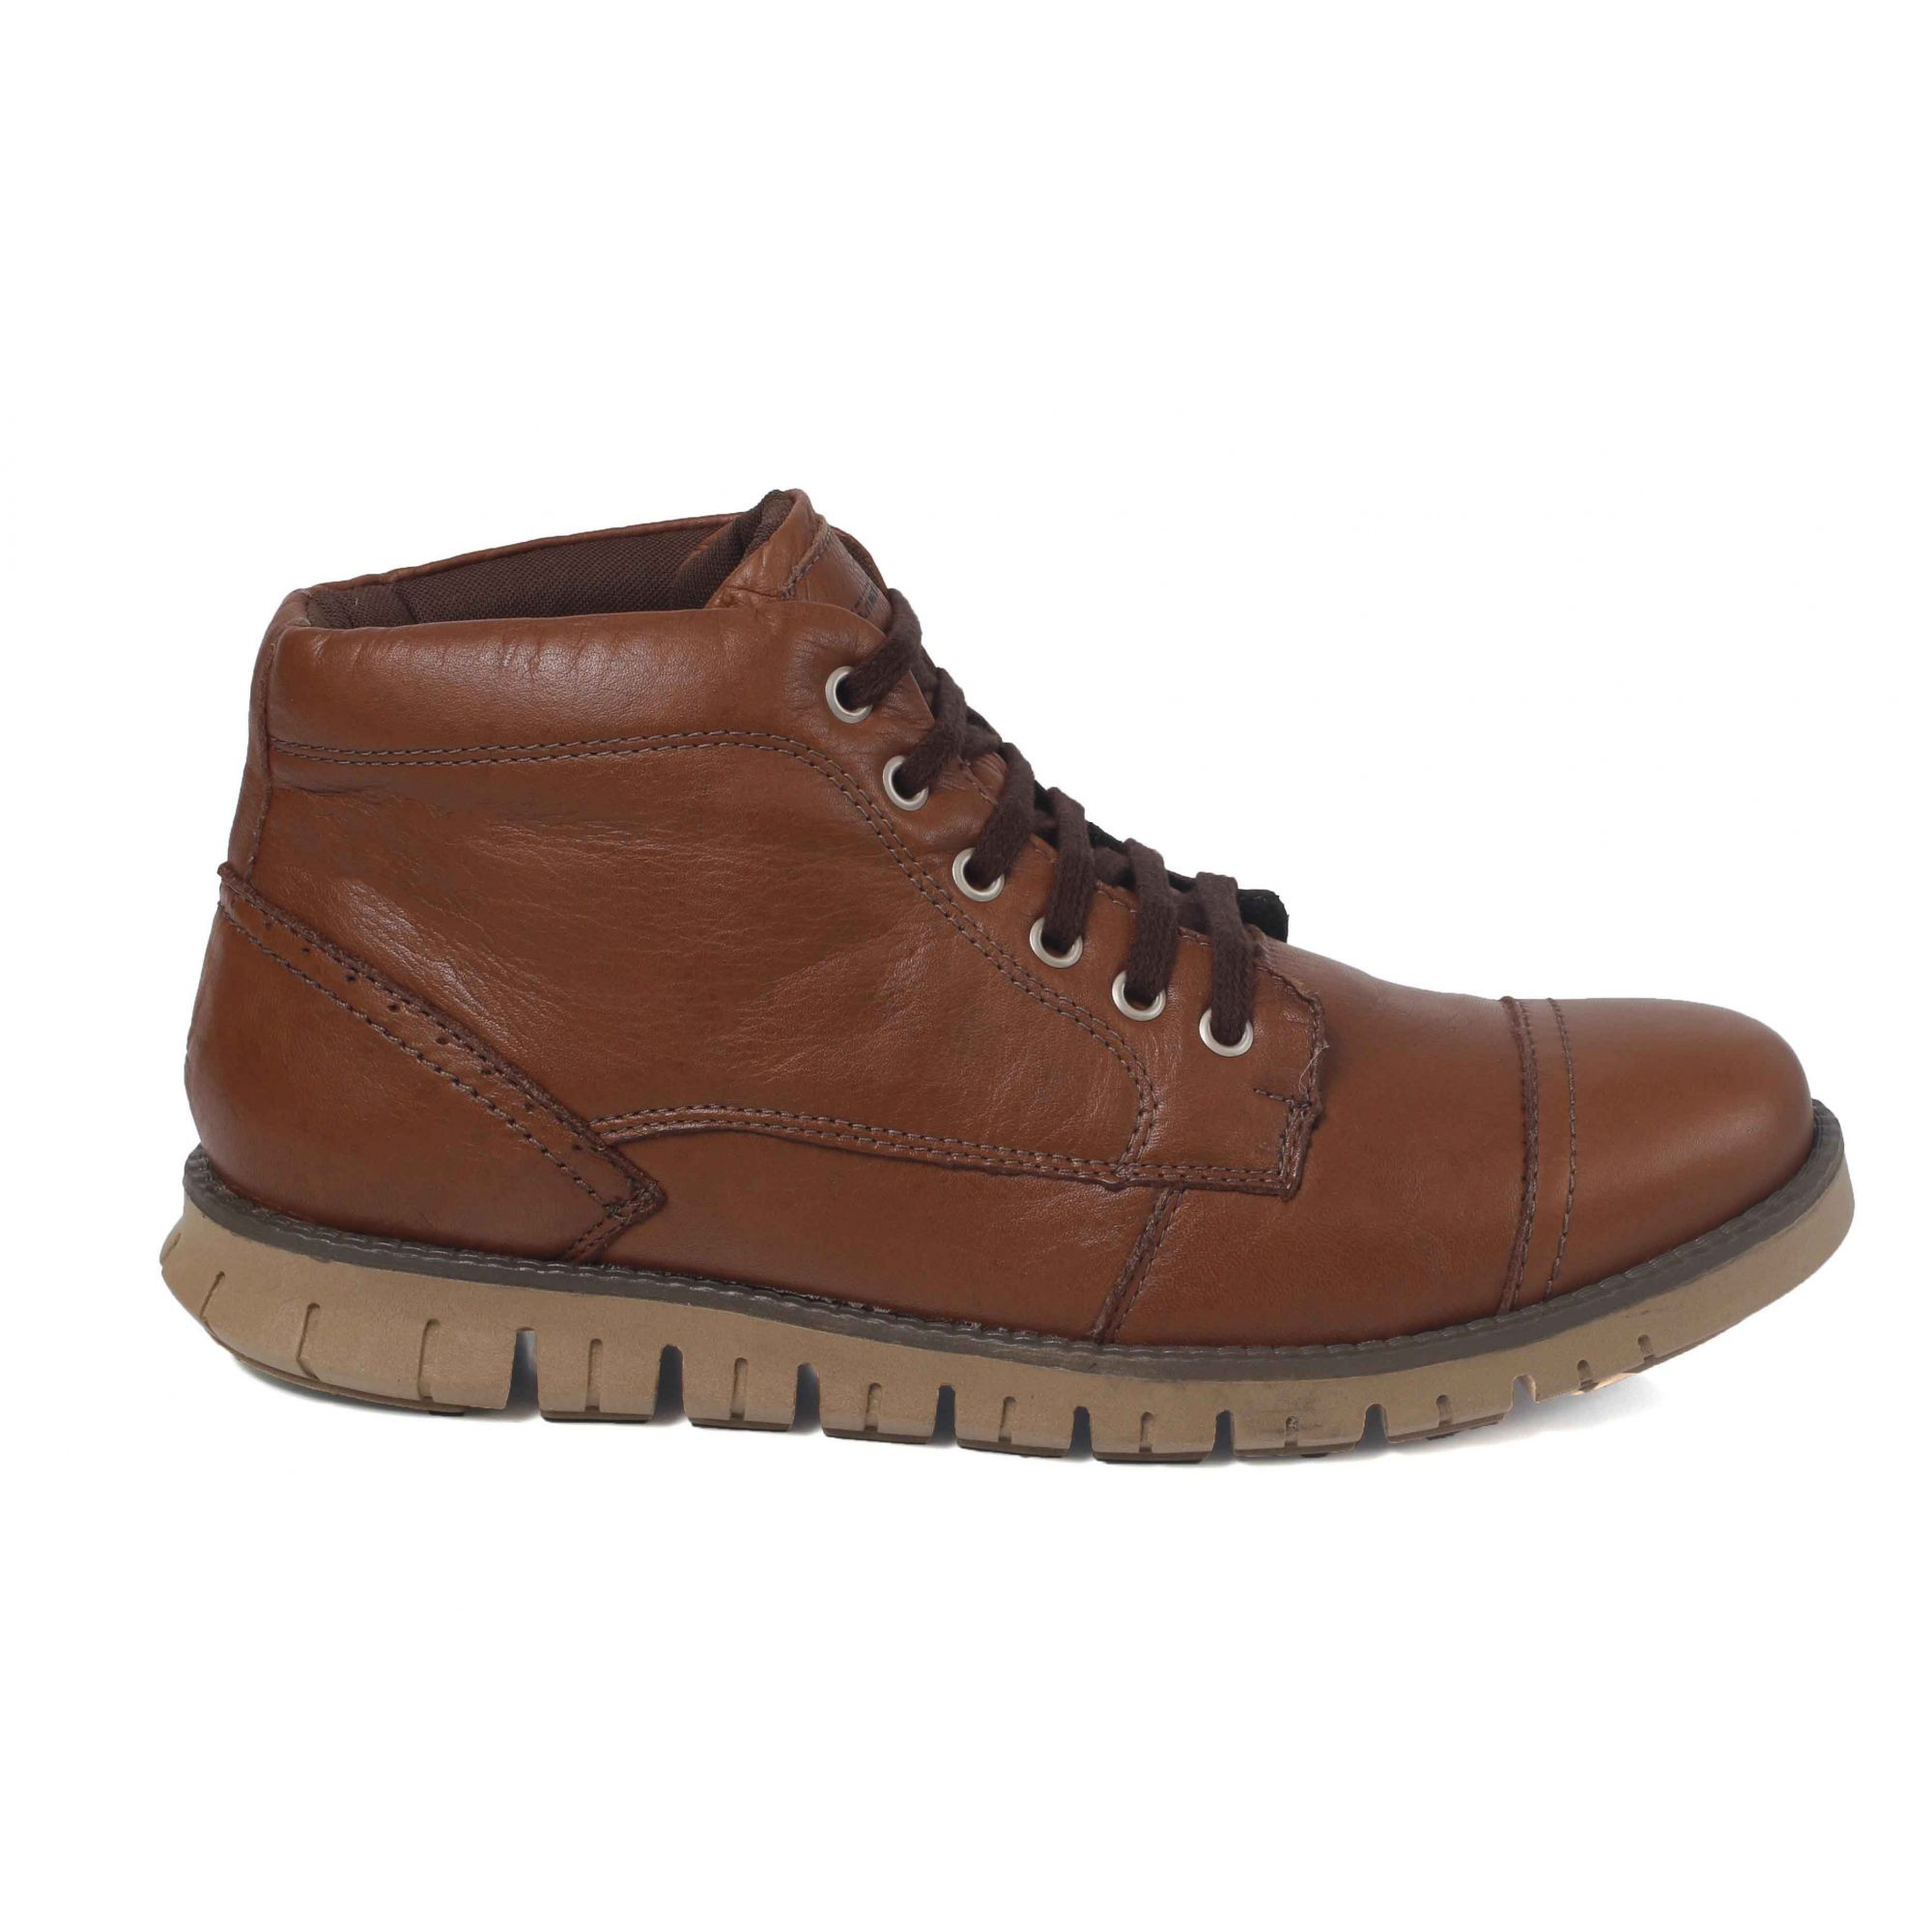 6b8866aabd4bb Coturno Sport Cano Baixo Masculino Tchwm Shoes Couro - Chocolate - Madrid  Outlet ...